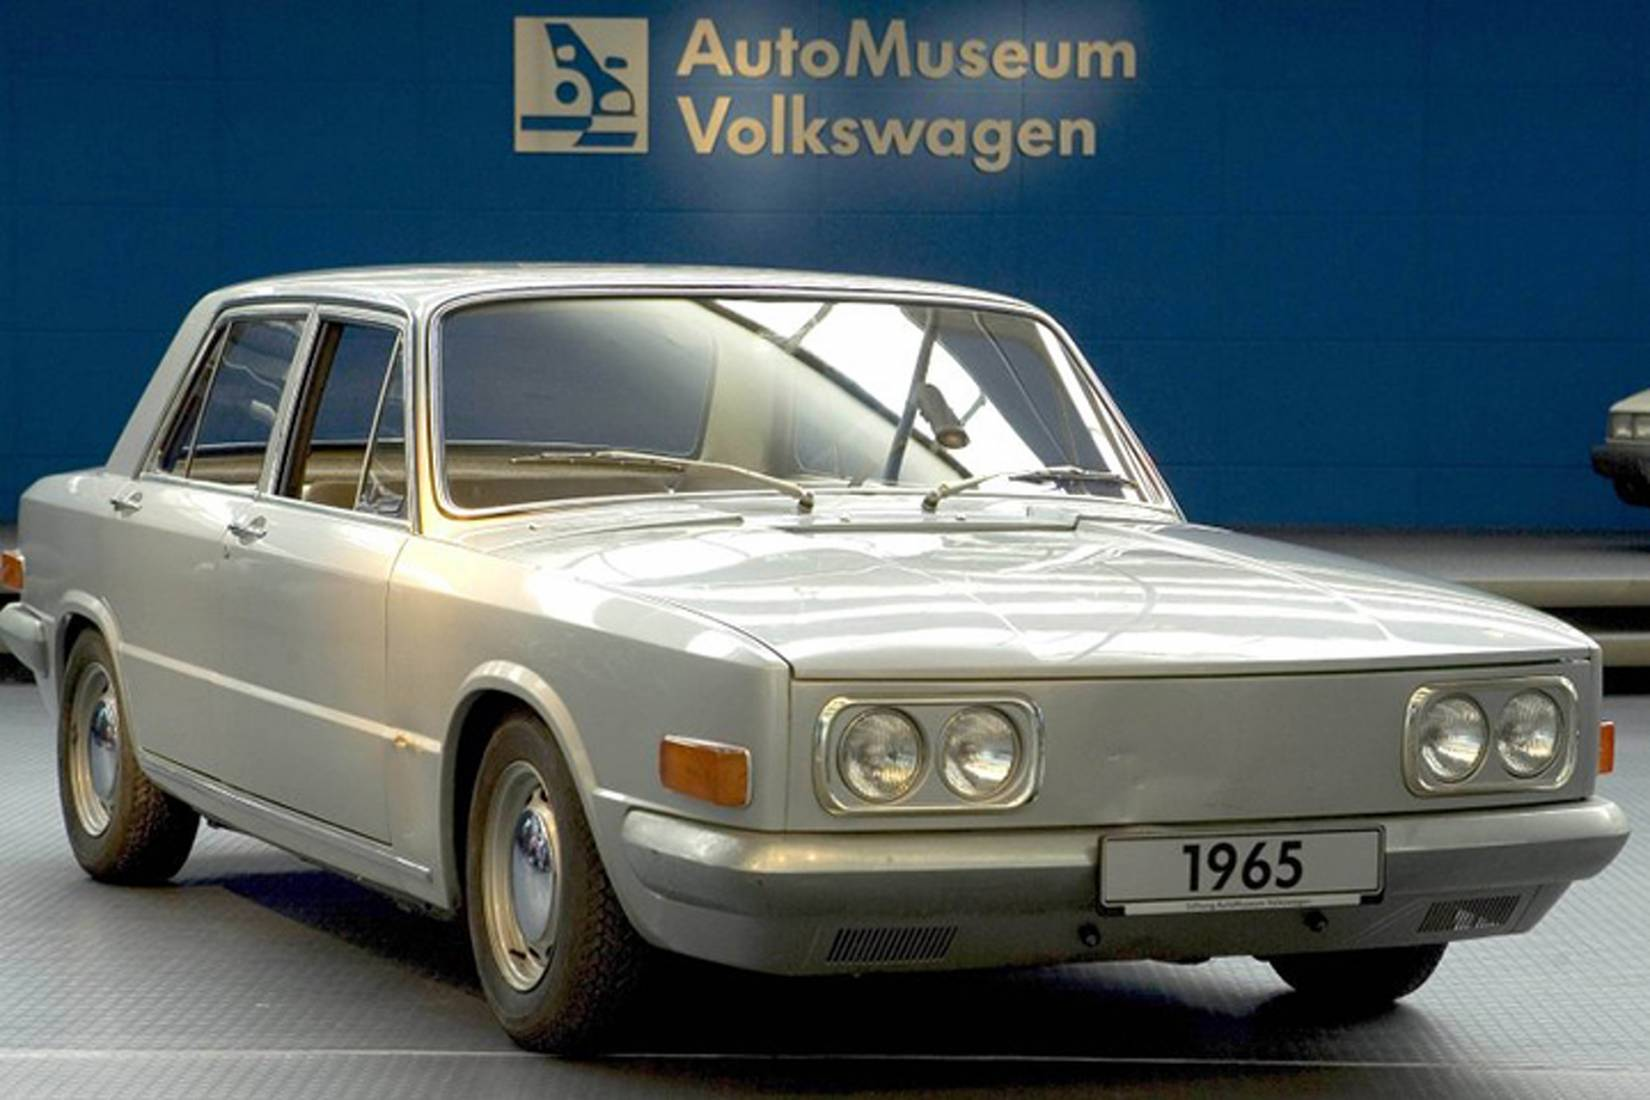 a-rare-look-at-prototypes-from-the-volkswagen-museum.jpg